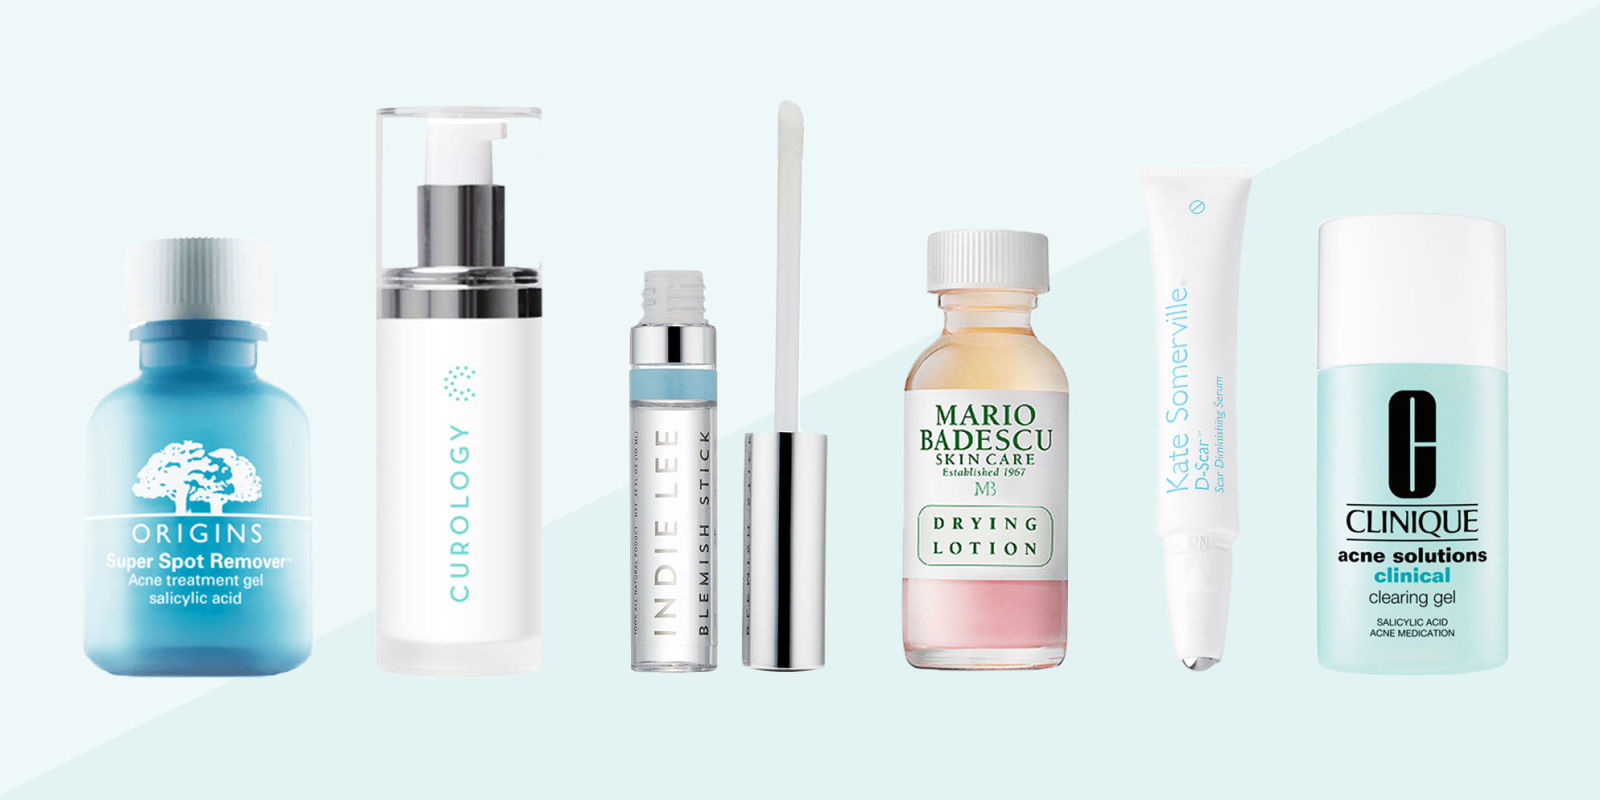 13 Best Acne Treatment Products of 2017 - Acne Treatment Gel and ...